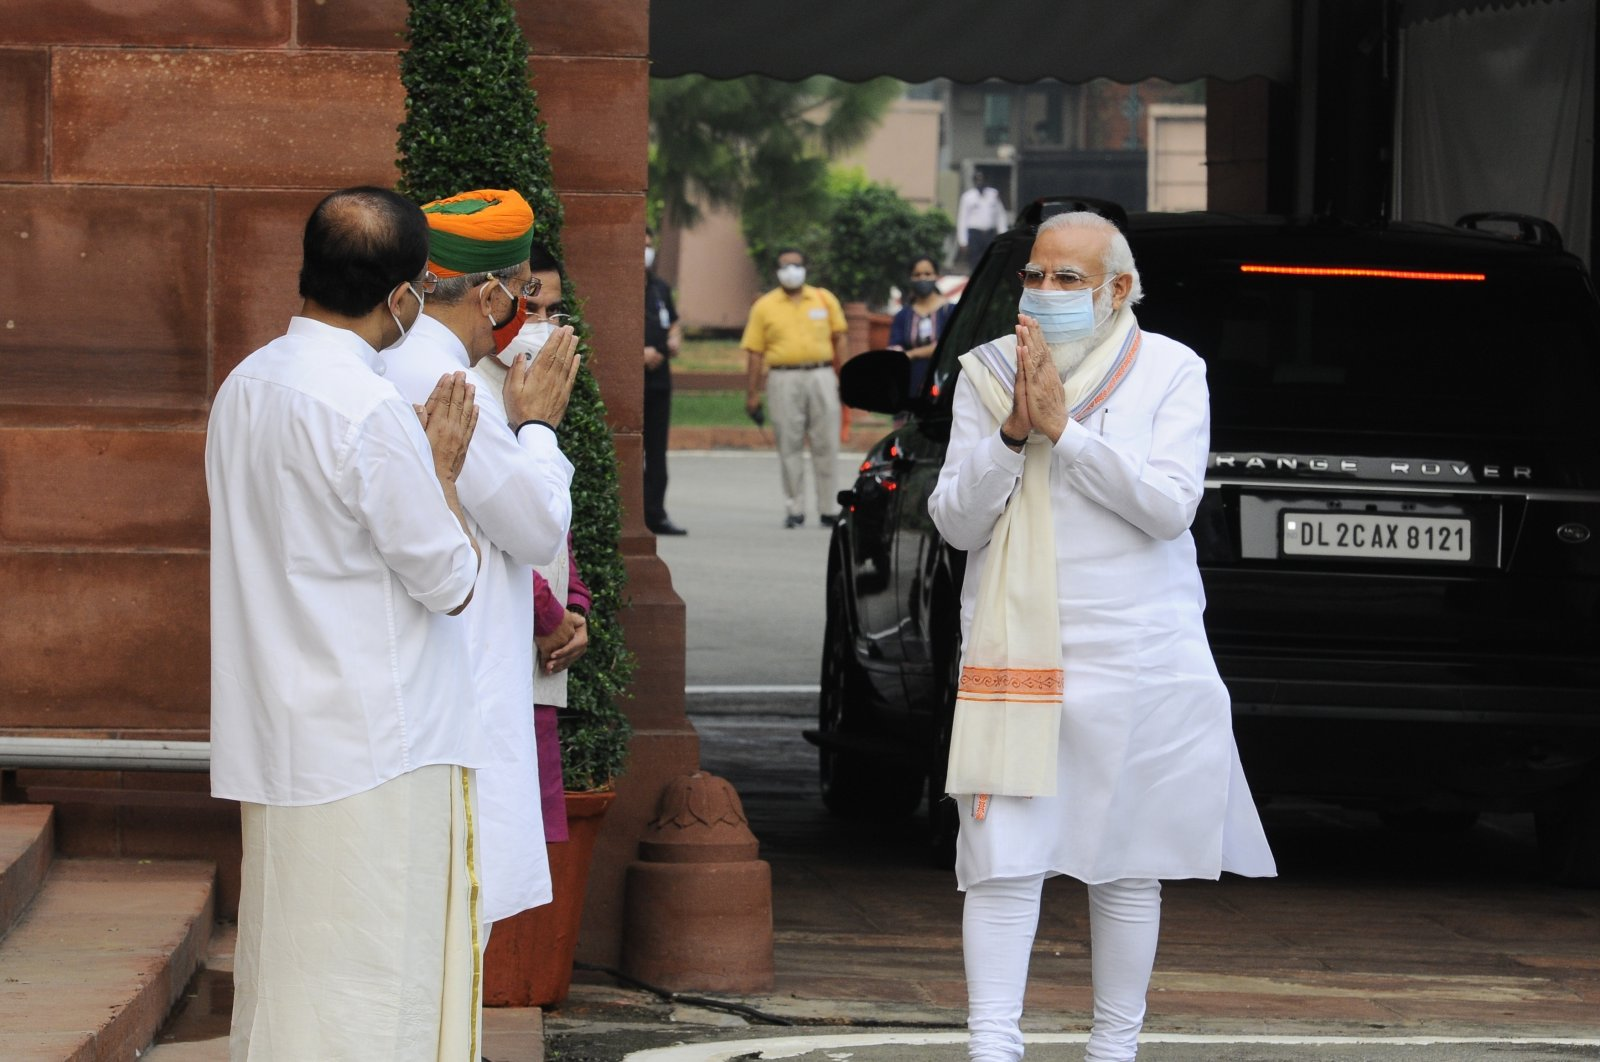 Indian Prime Minister Narendra Modi (R) is received by his ministerial colleagues as he arrives at the parliament in New Delhi, India, Sept. 14, 2020. (AP Photo)